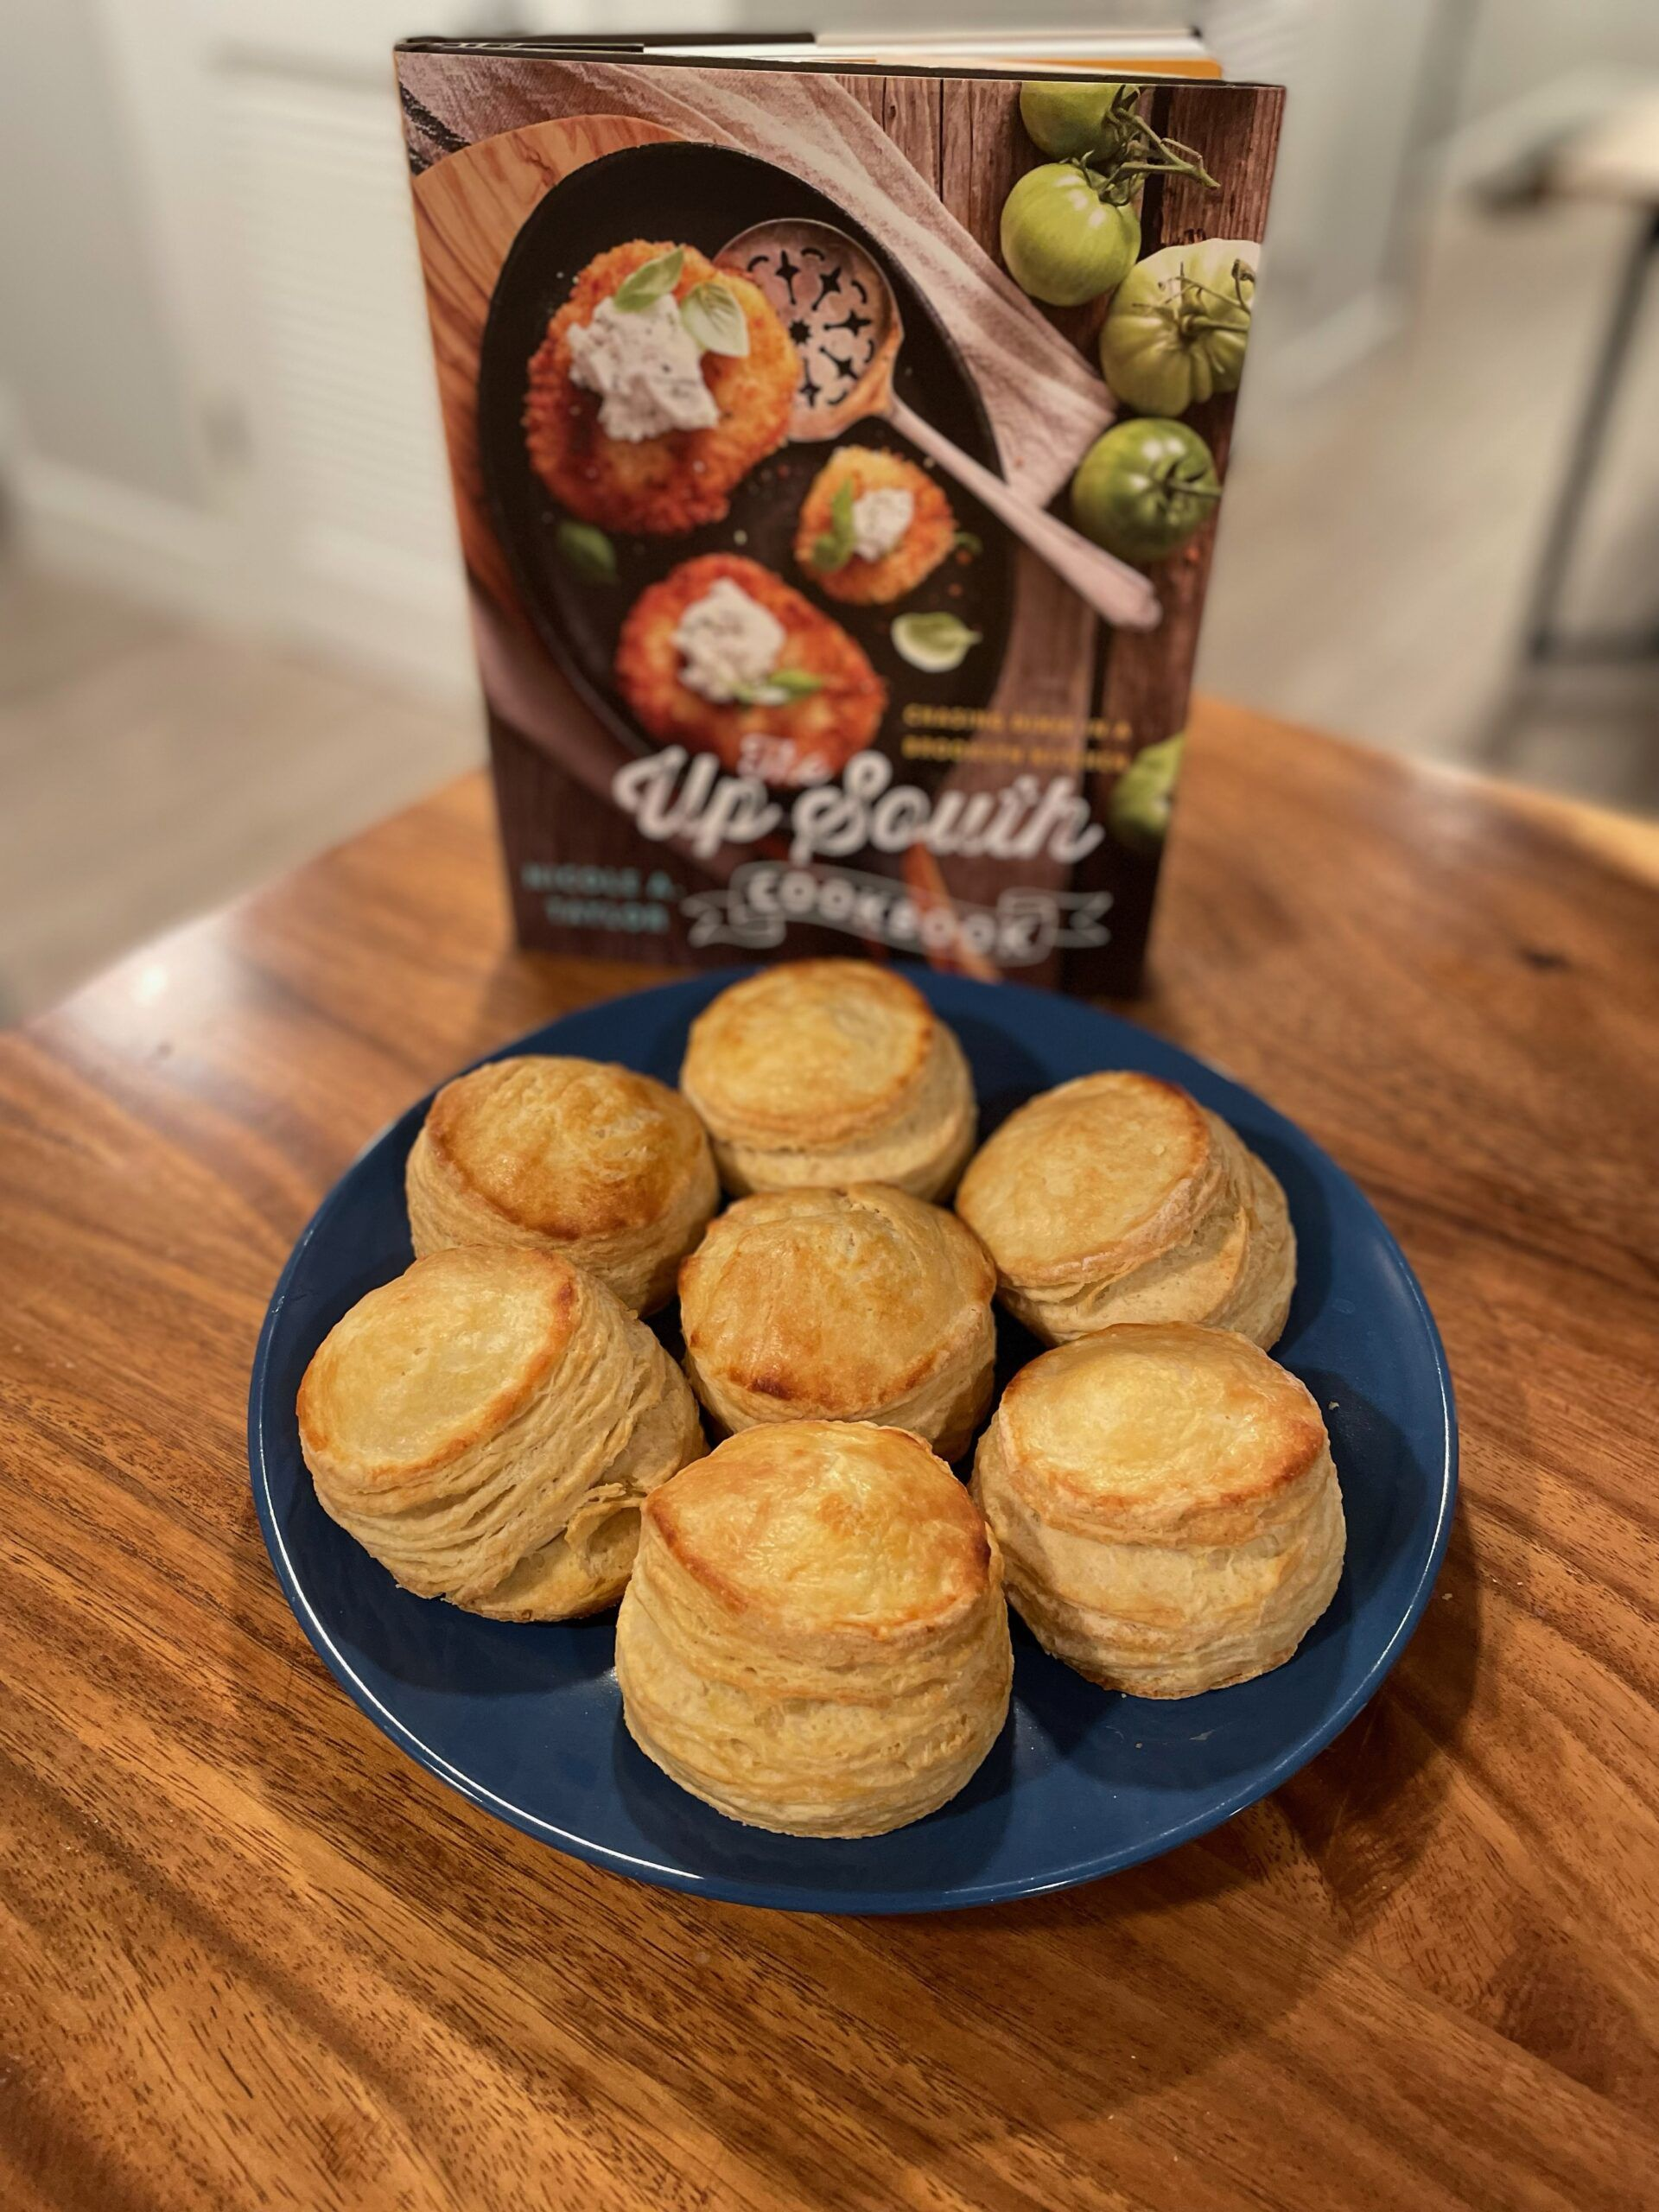 The Up South Cookbook with a plate full of buttermilk biscuits